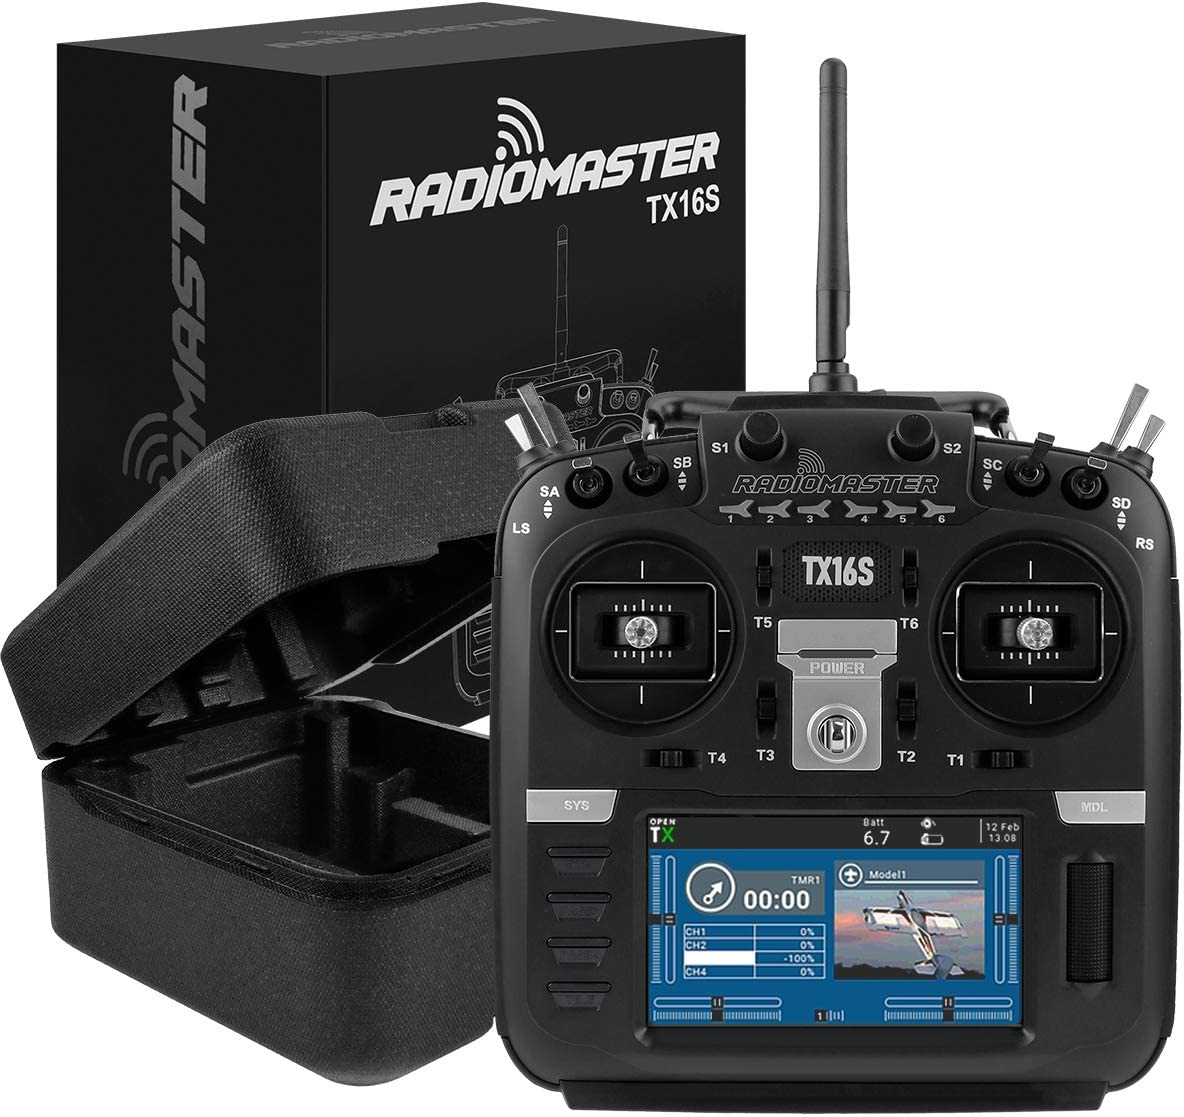 FancyWhoop RadioMaster TX16S Radio Transmitter Hall Gimbal 2.4G 16CH 4.3inch LCD Open Source Multi-Protocol RF System RC Transmitter Remote Control for RC Drone Mode 2 Left Hand Throttle